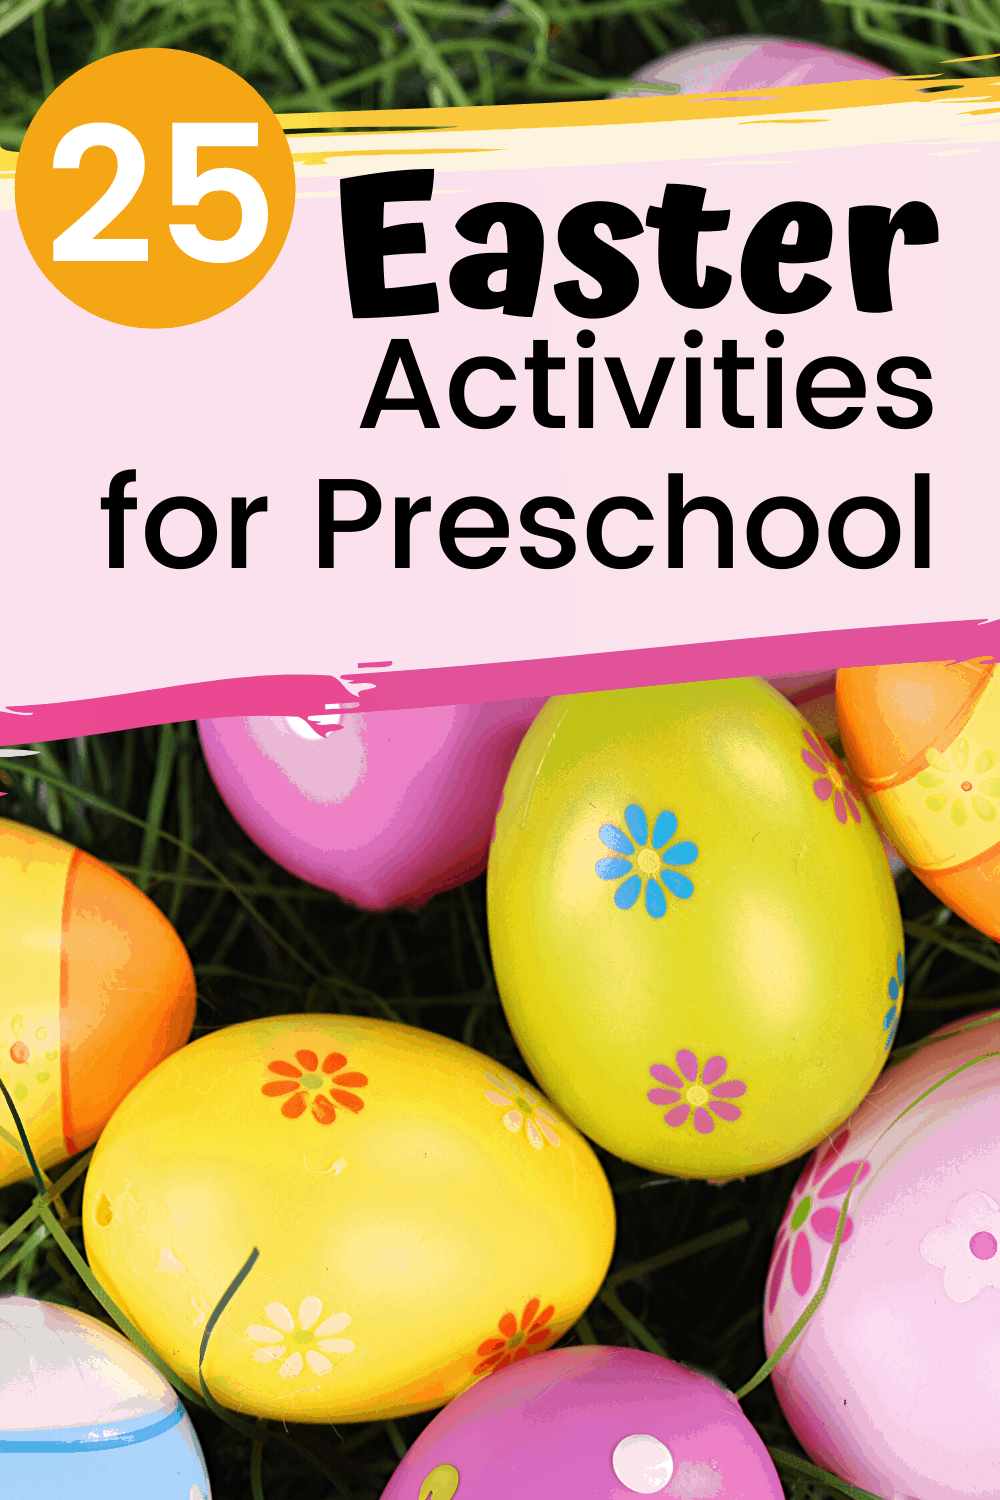 Spring has sprung which means Easter is on its way. You don't want to miss these Easter activities for preschoolers! Books, printables, snacks, and more!